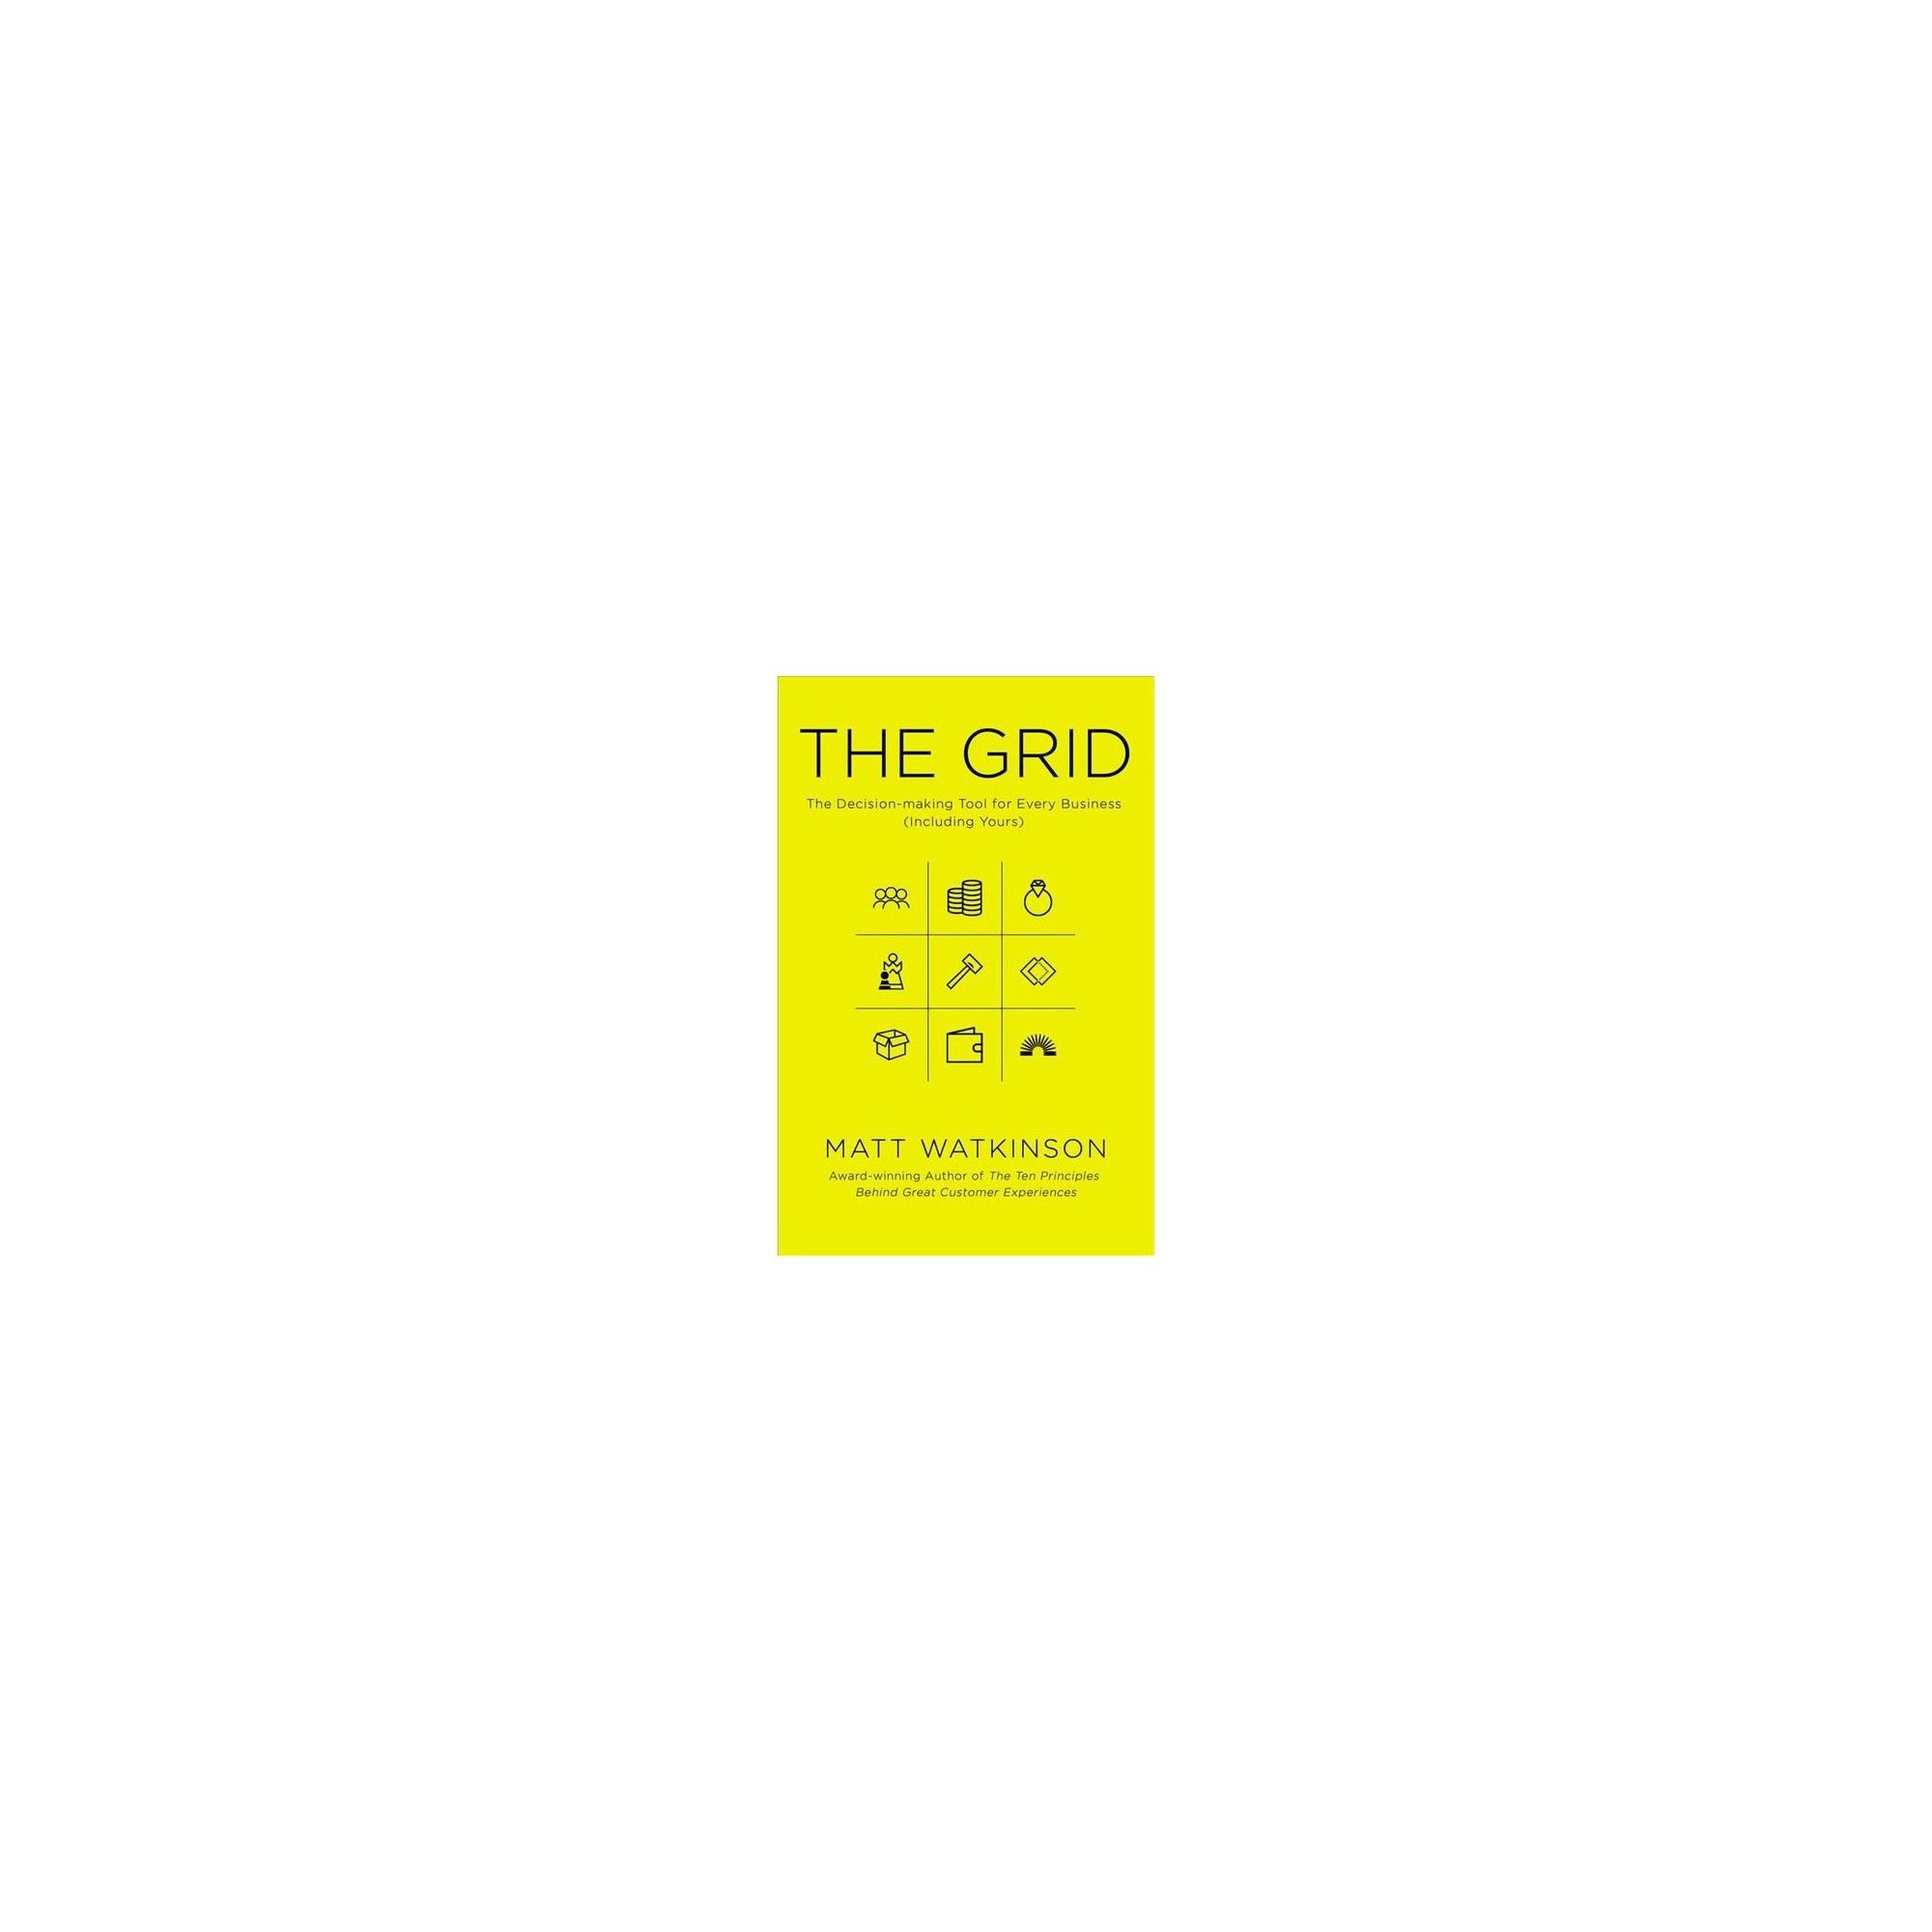 the grid the decisionmaking tool for every business including yours